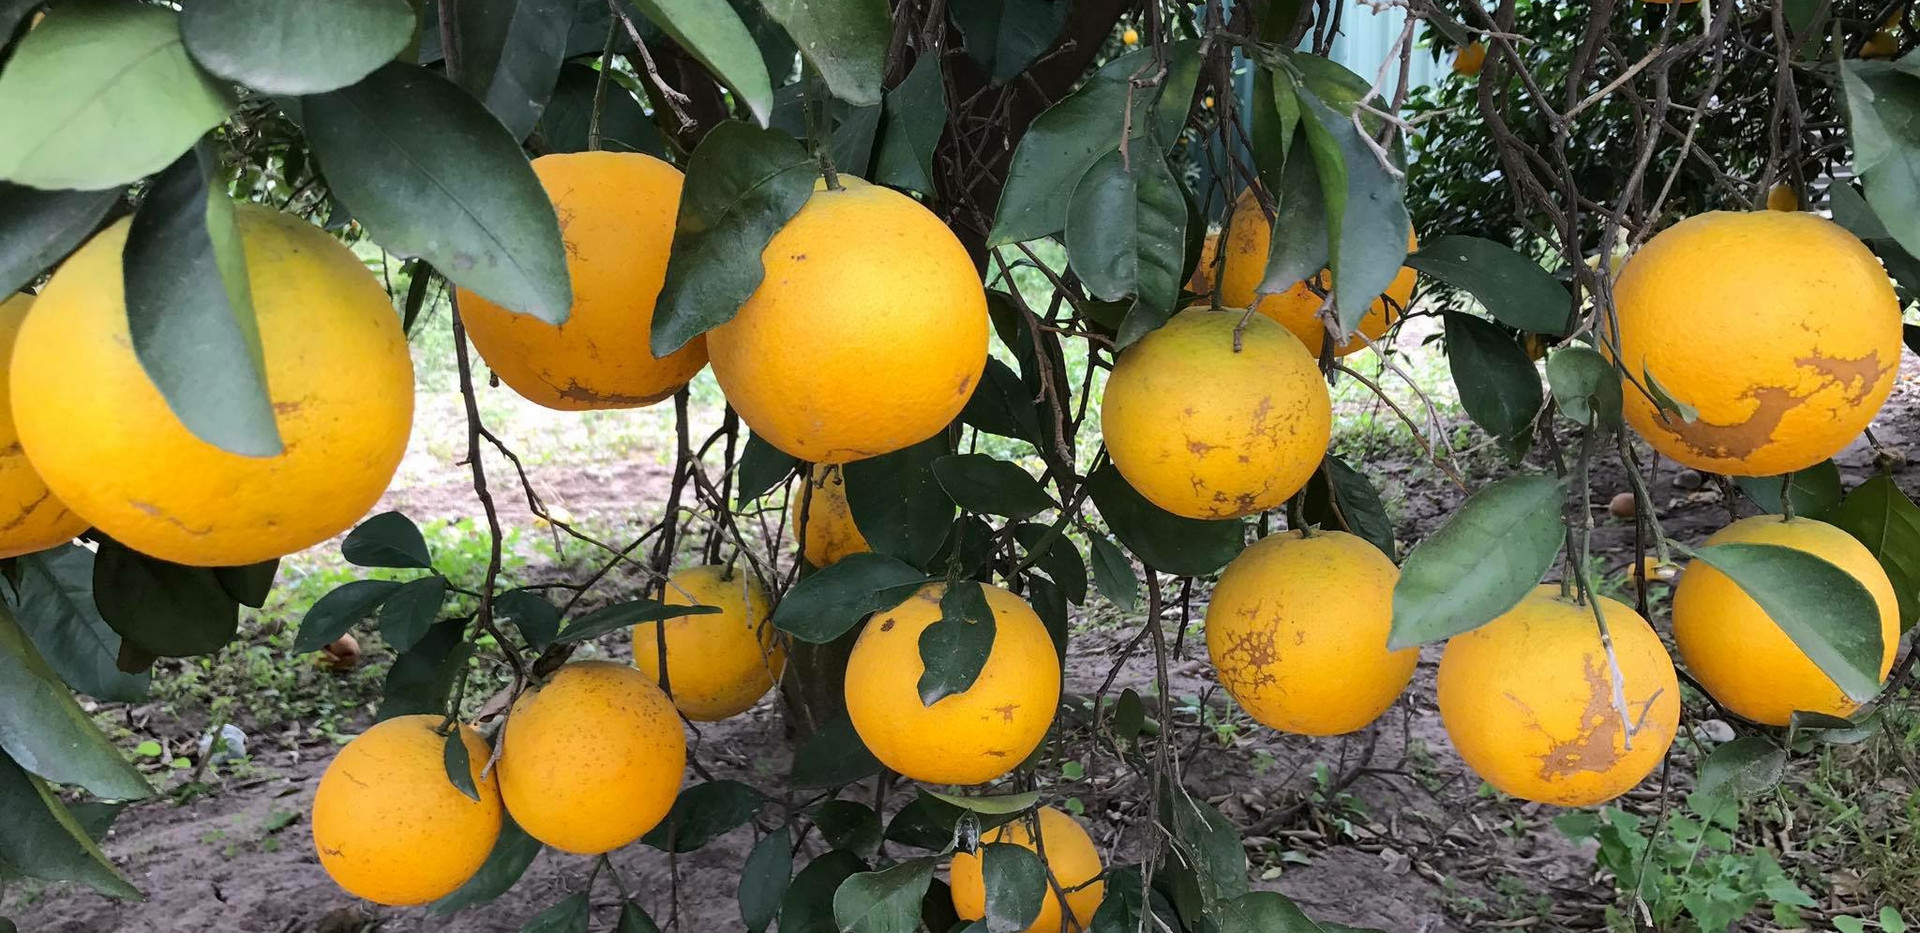 Early Season Oranges 01.JPG